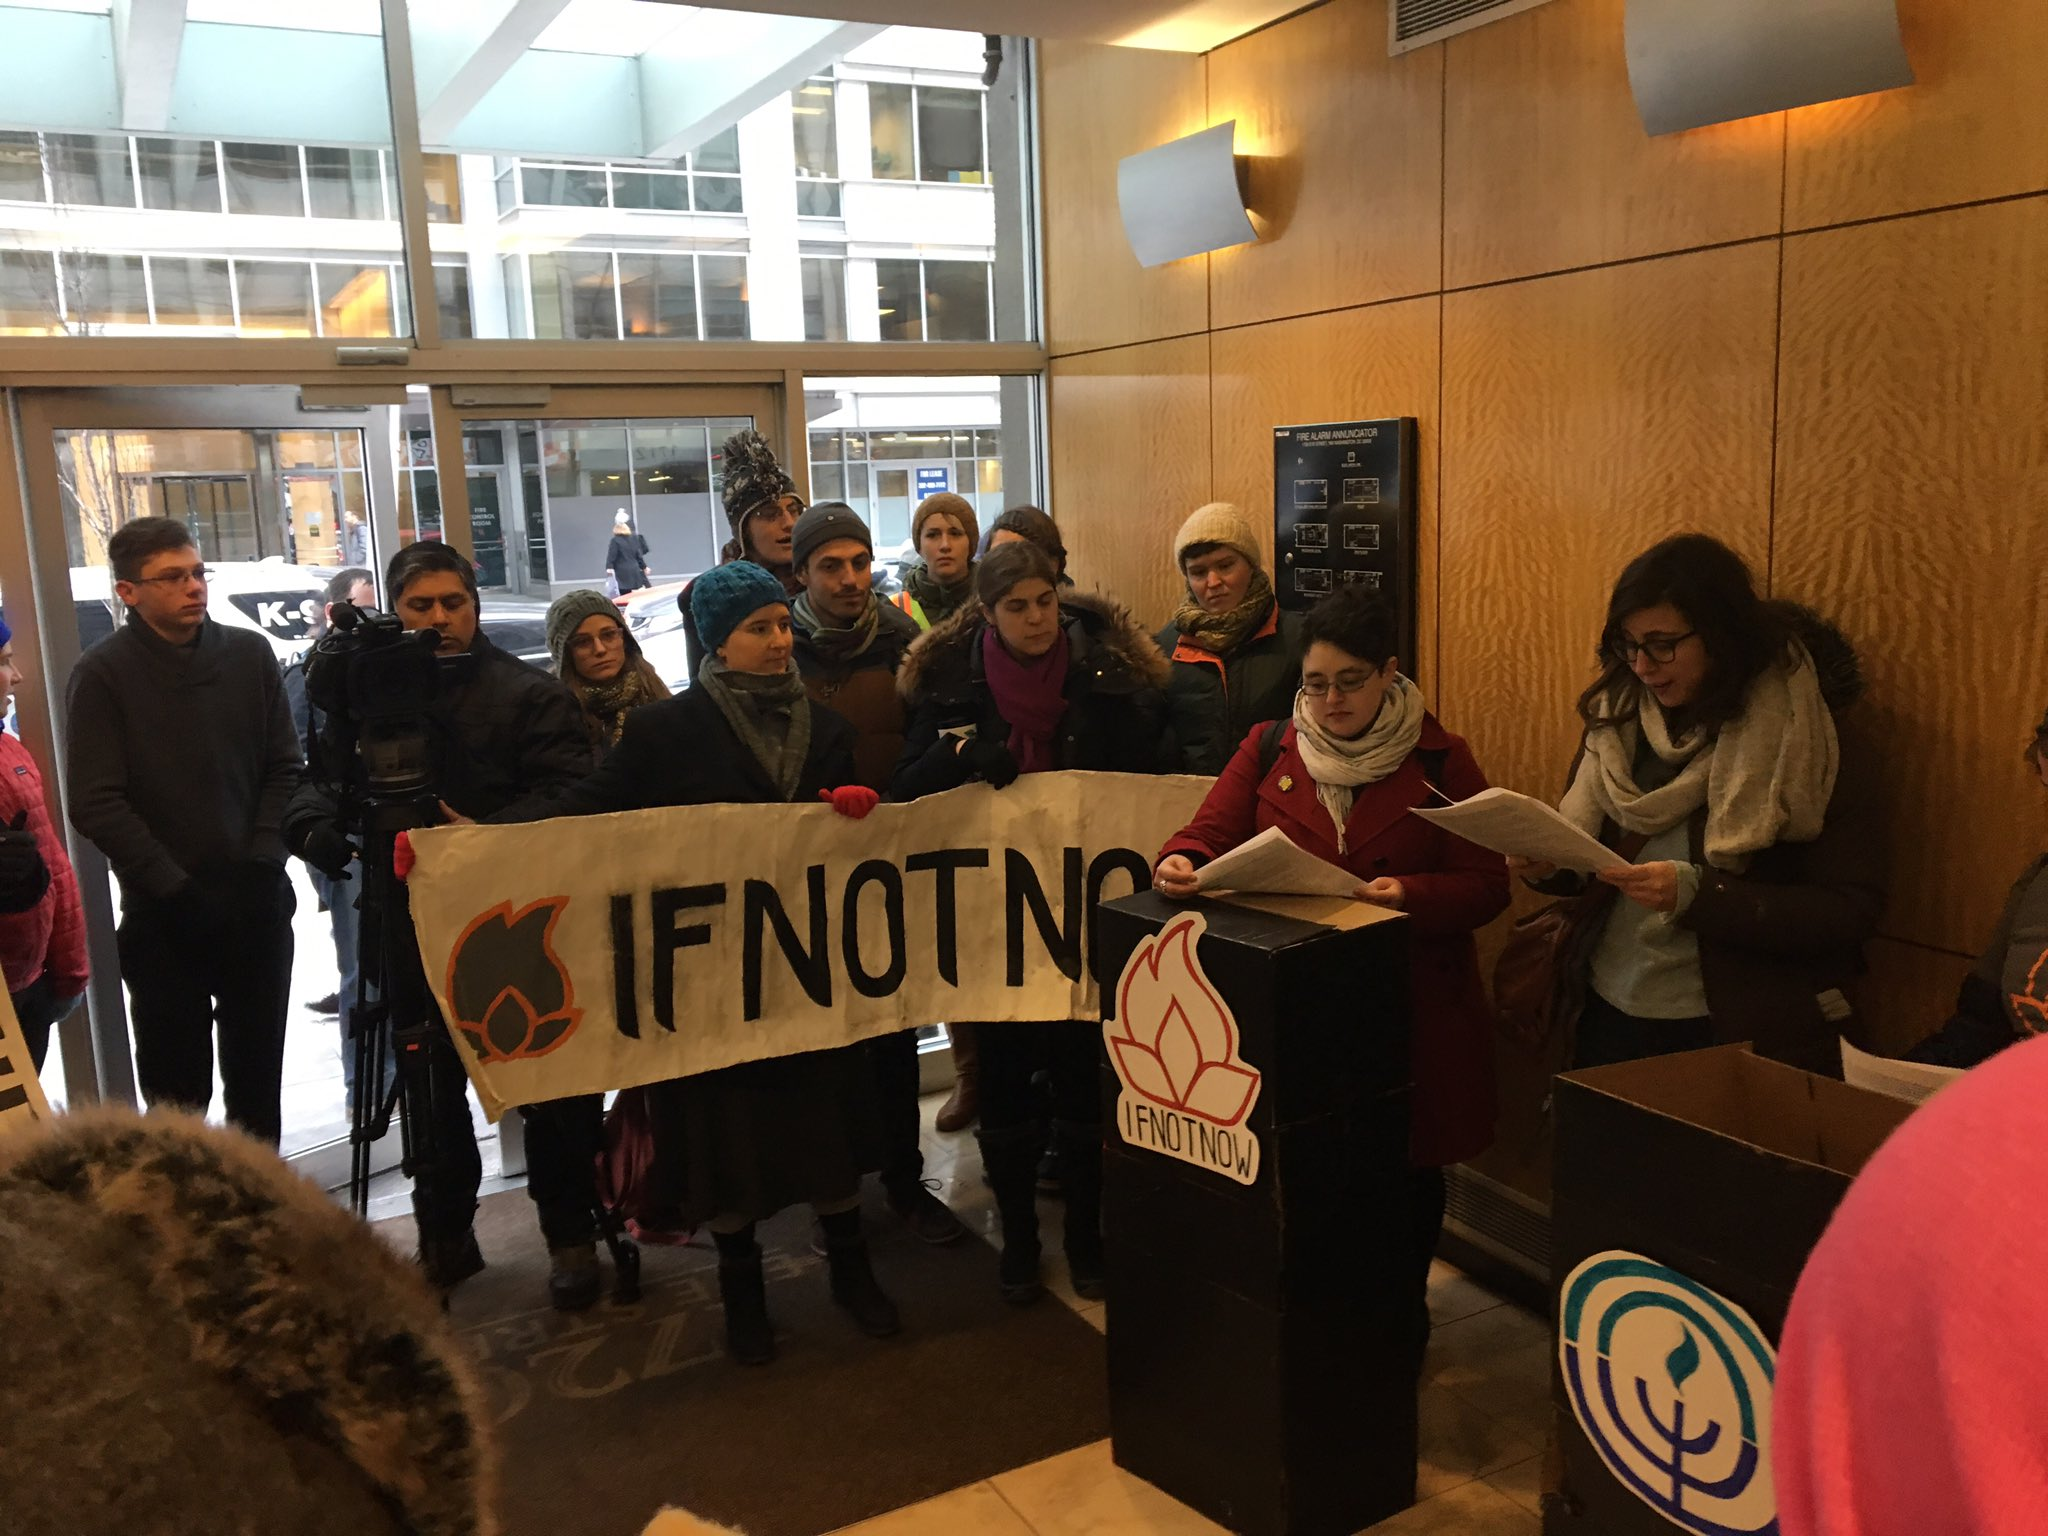 IfNotNow Builds the Community We Need Through Protest